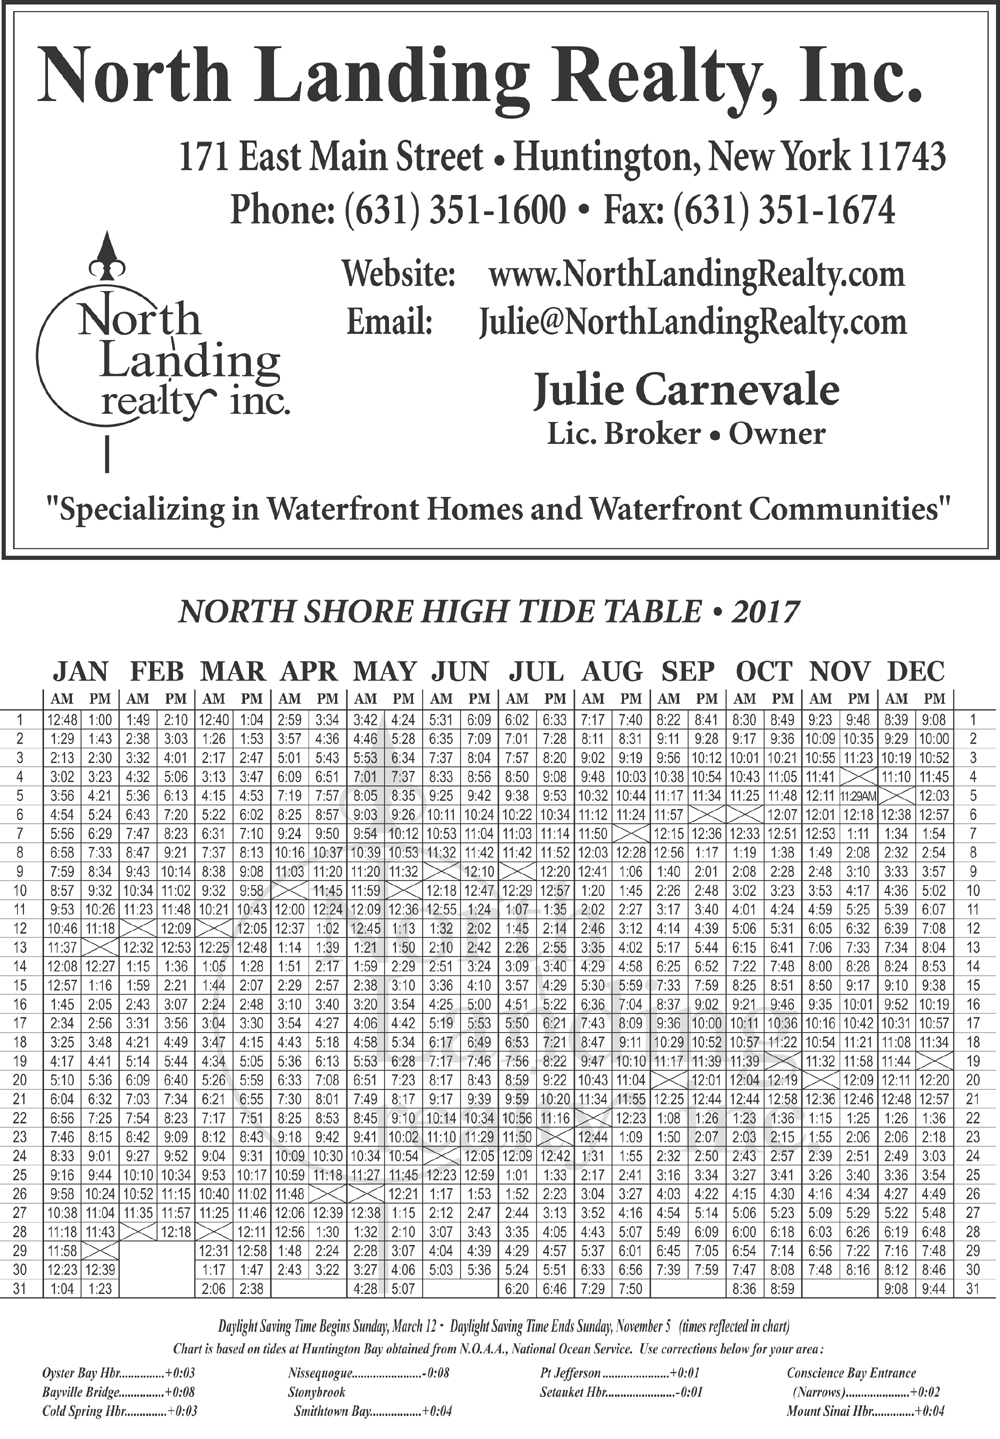 2017 North Shore High Tide Table